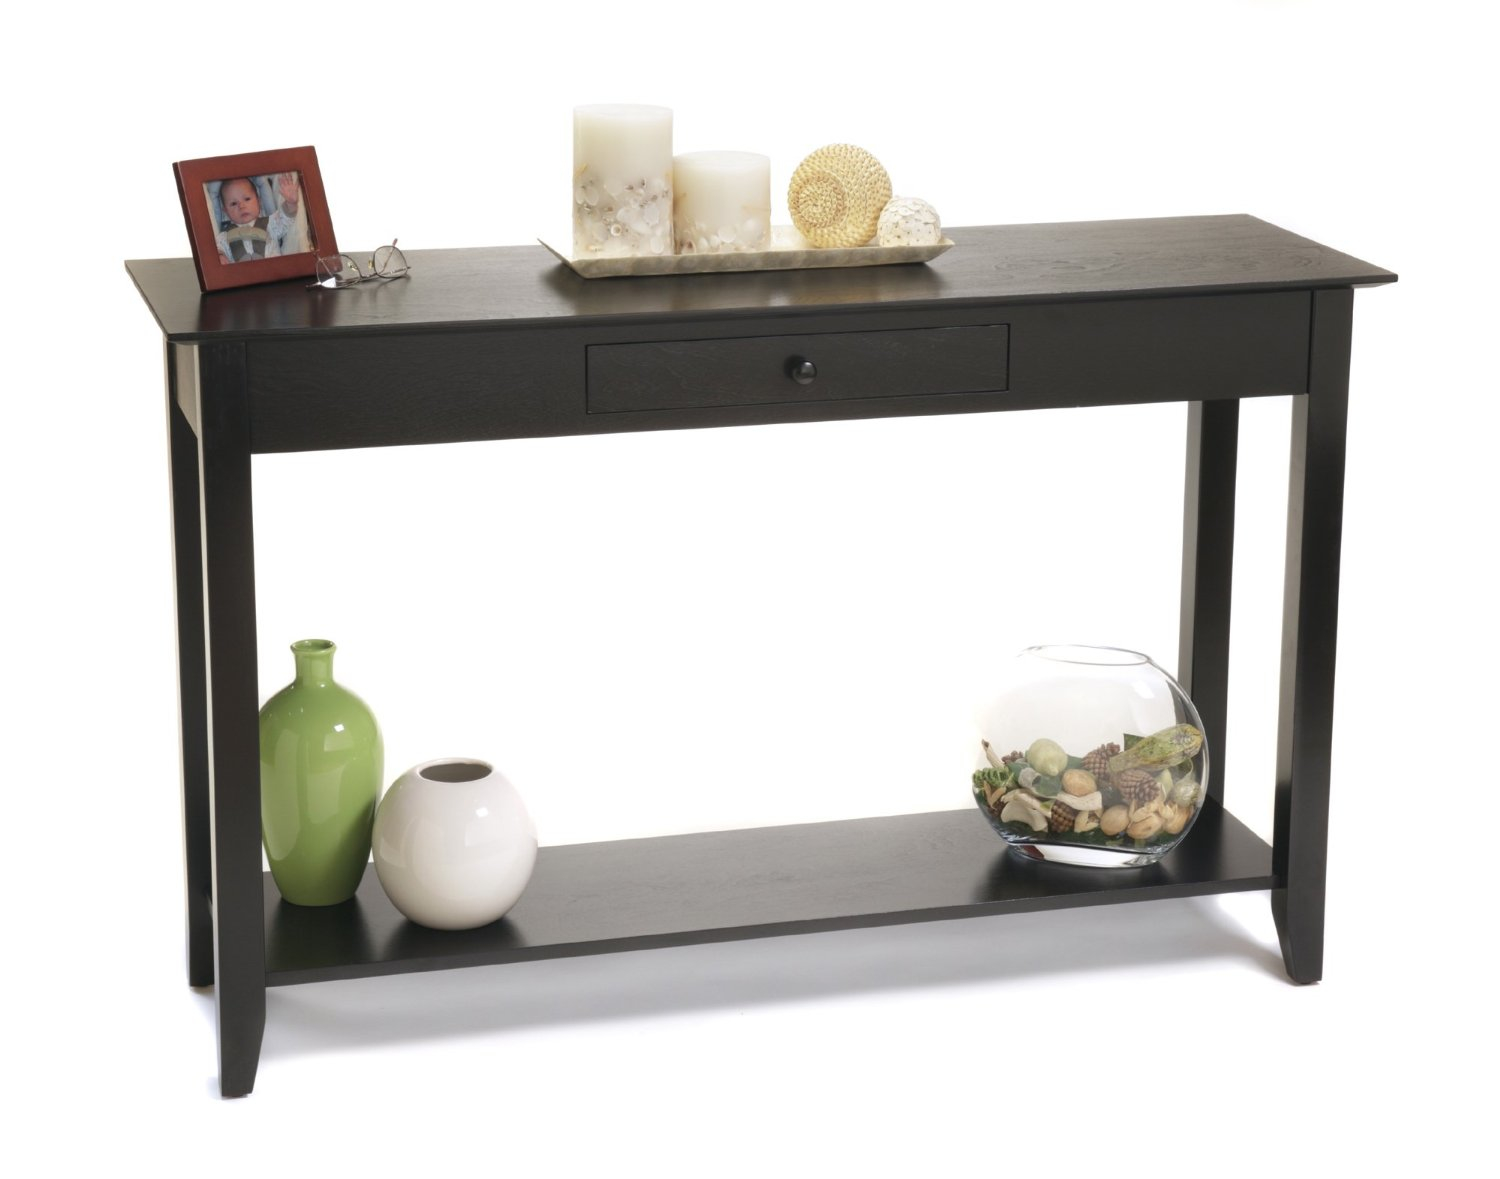 trend small sofa table  for your contemporary sofa inspiration  -  trend small sofa table  with additional modern sofa inspiration withsmall sofa table